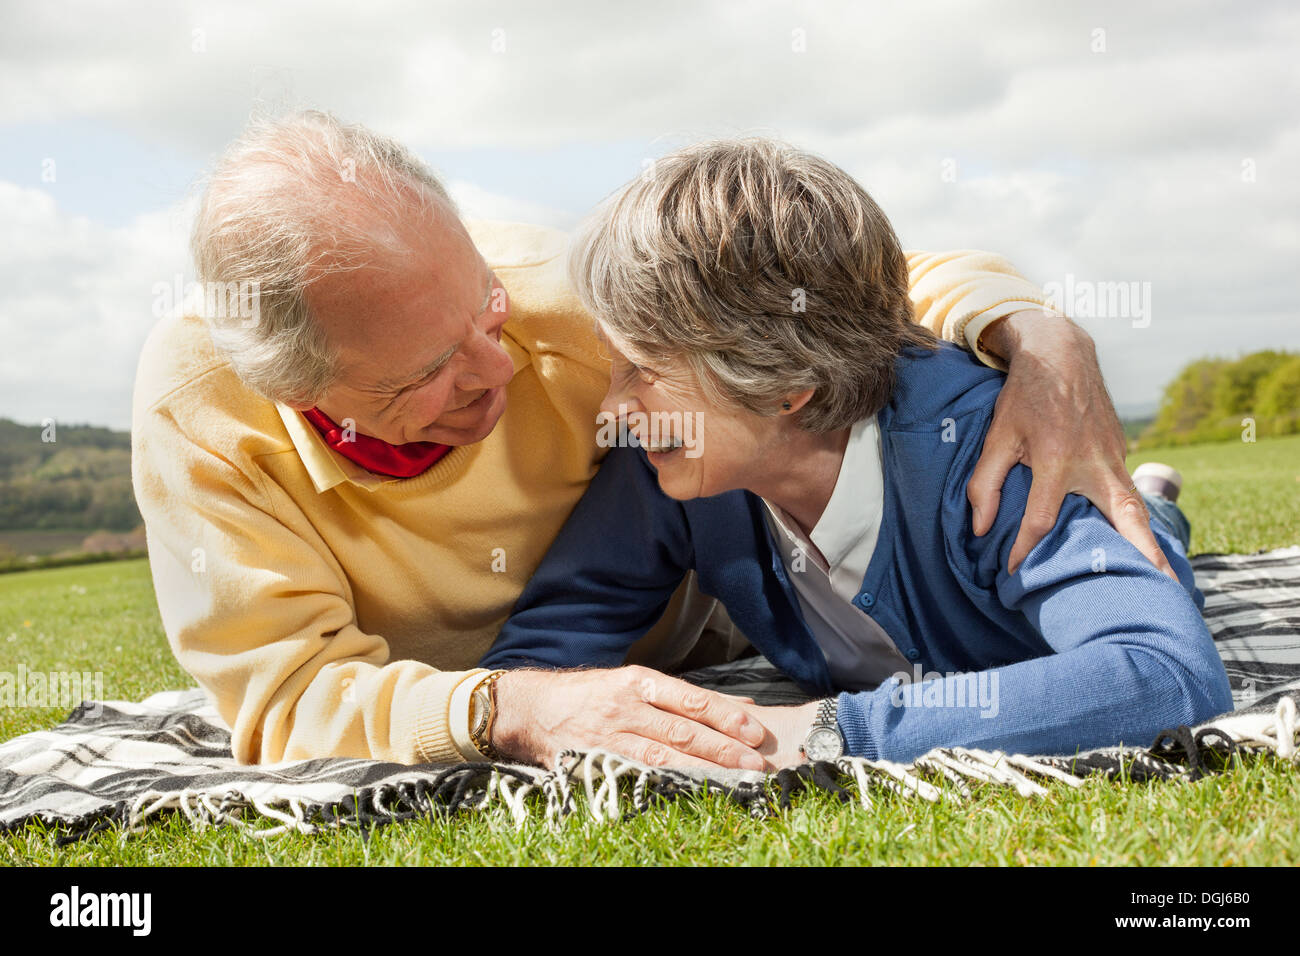 Mari et femme lying on stomach on blanket in field Banque D'Images